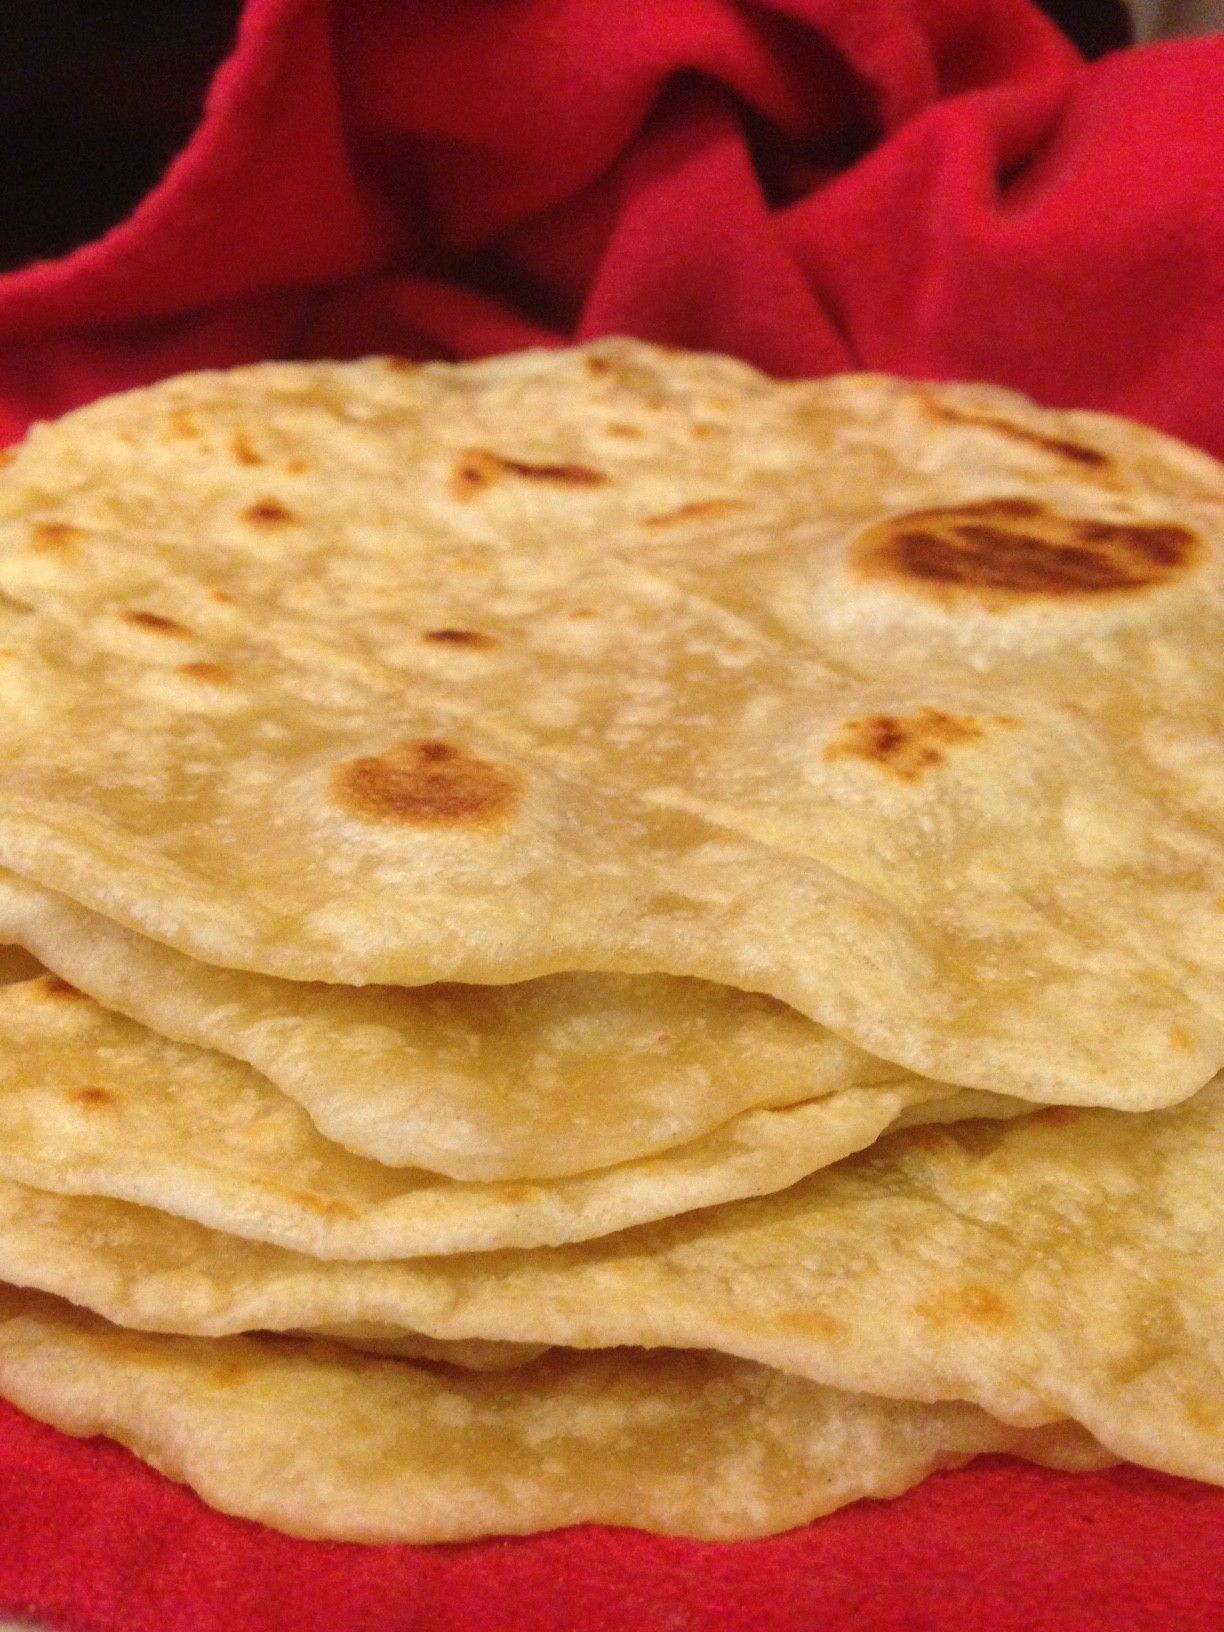 Easy Homemade Tortillas No Lard Favorite Food Bloggers Brot Rezept Rezepte Leckeres Essen